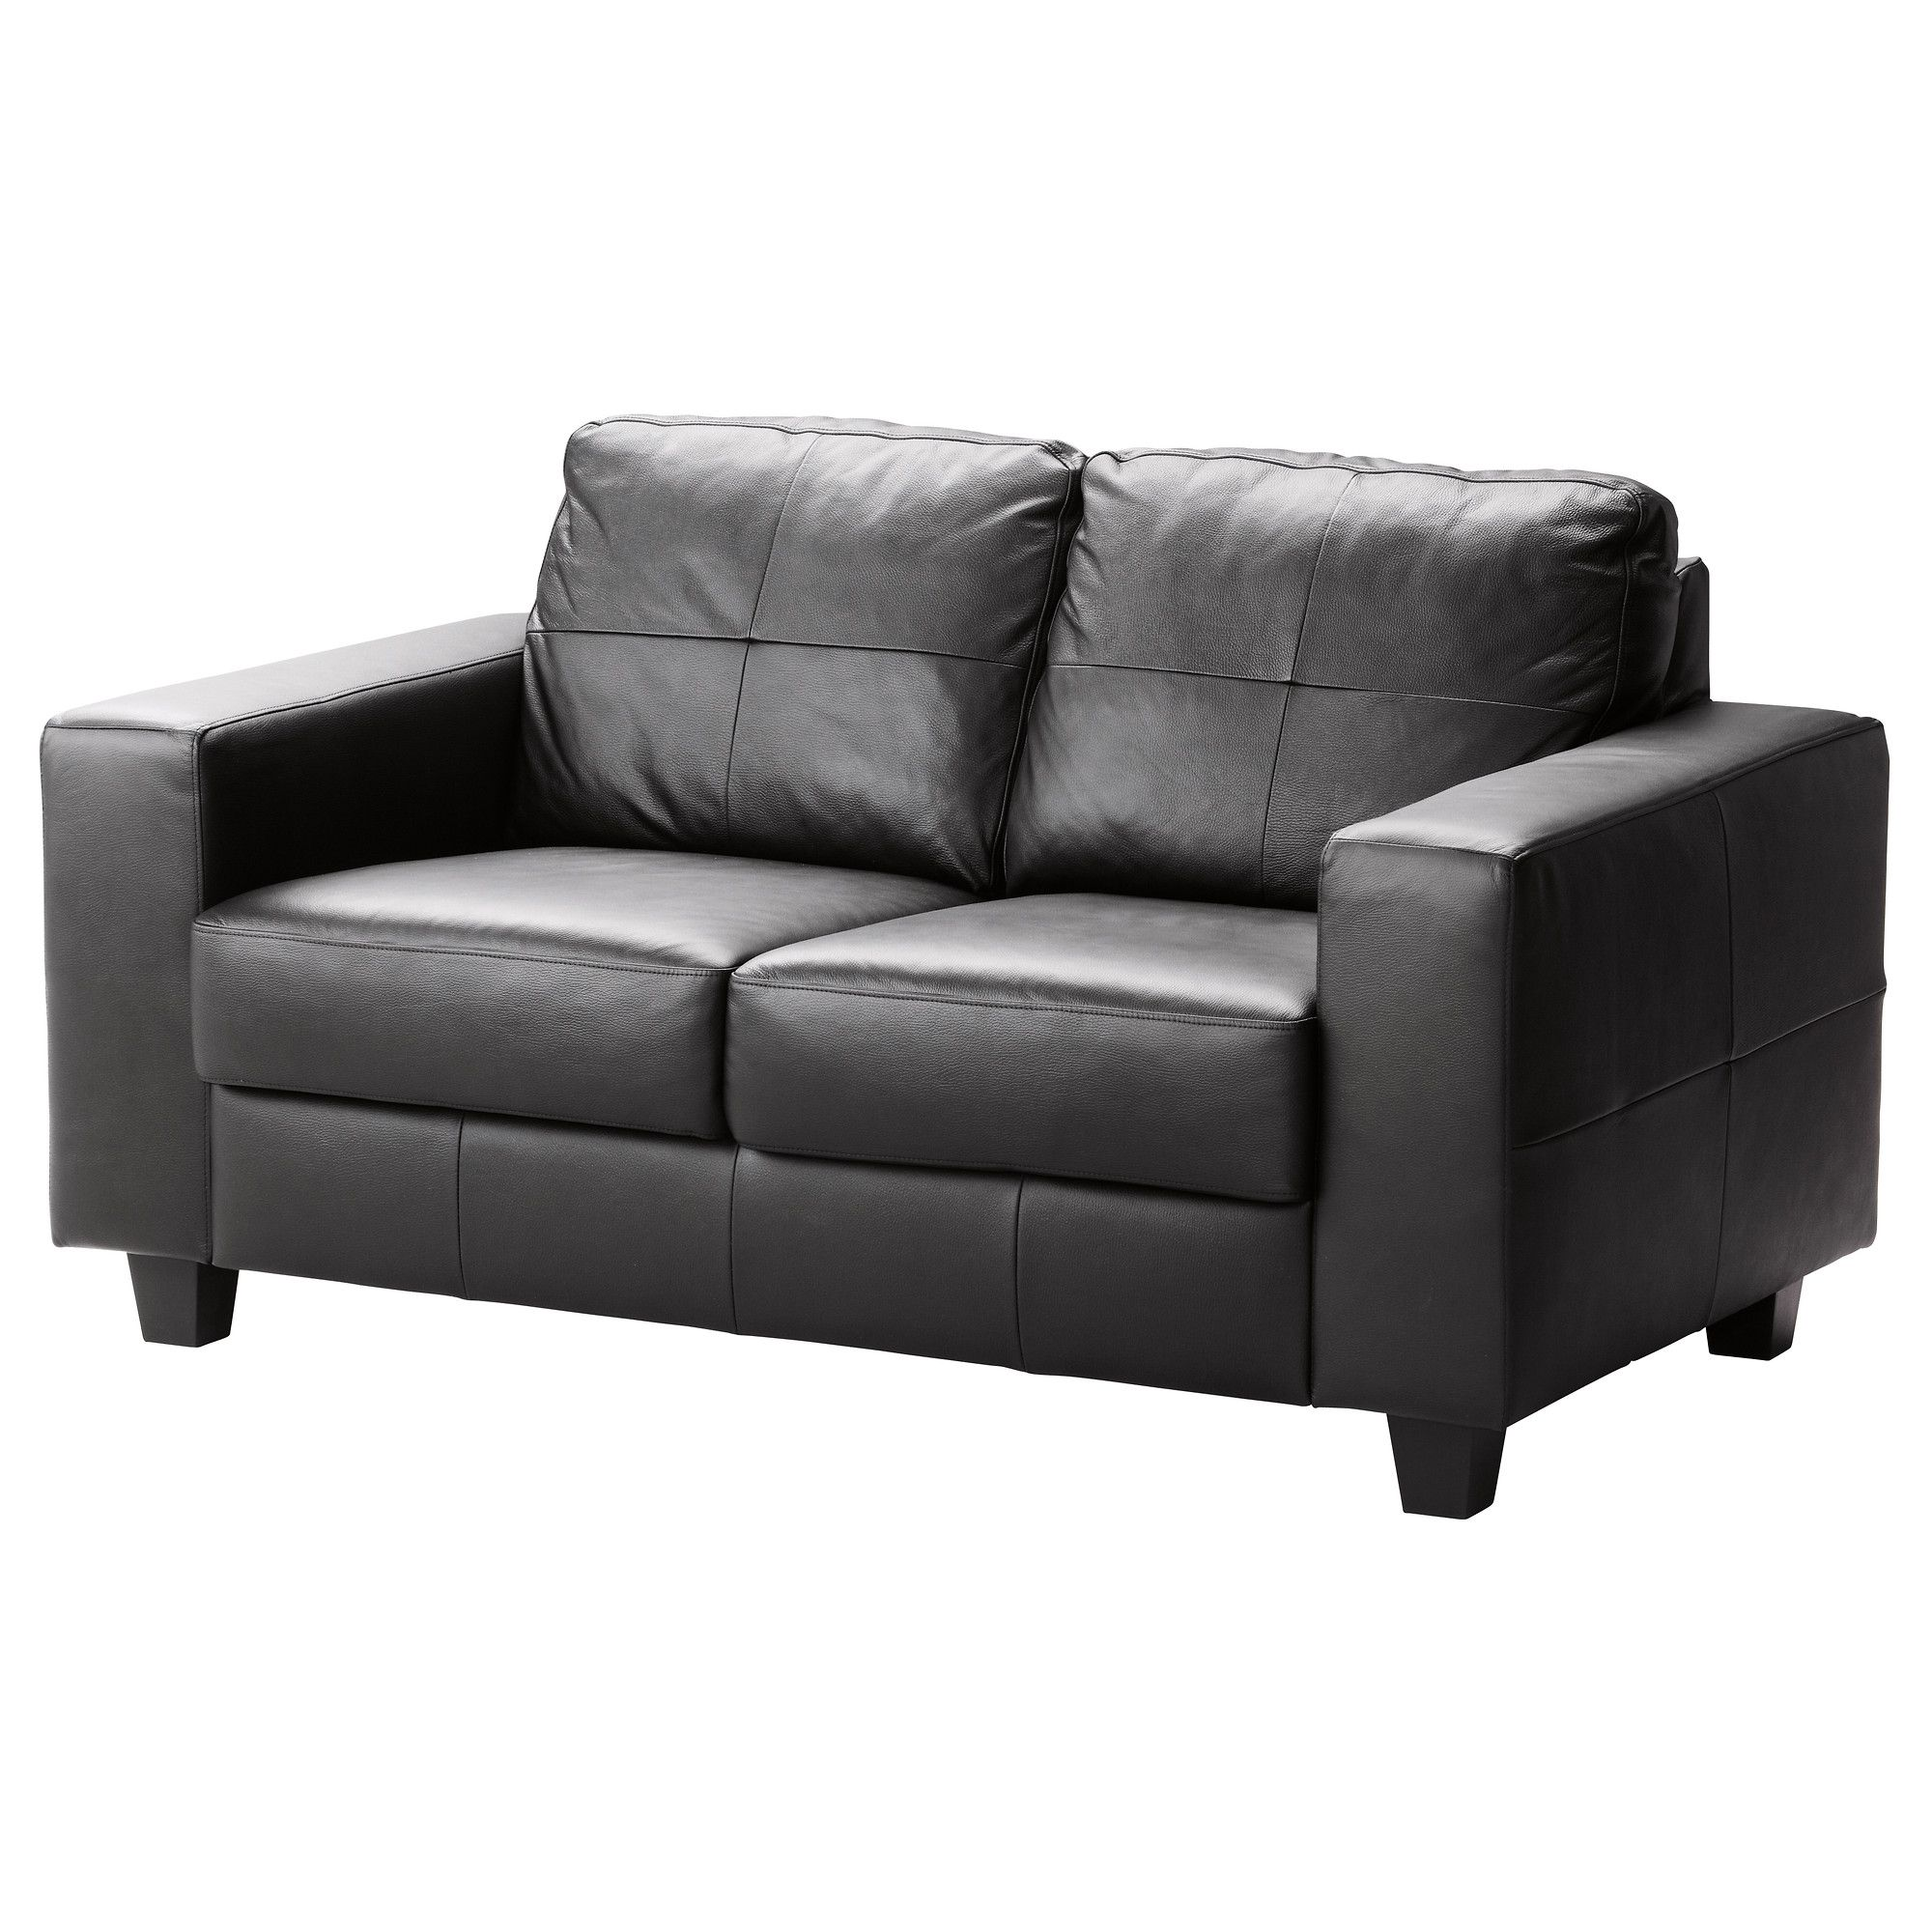 Ikea Ledersofa Ebay Kleinanzeigen Skogaby Loveseat Ikea Furniture Ikea Leather Sofa Ikea